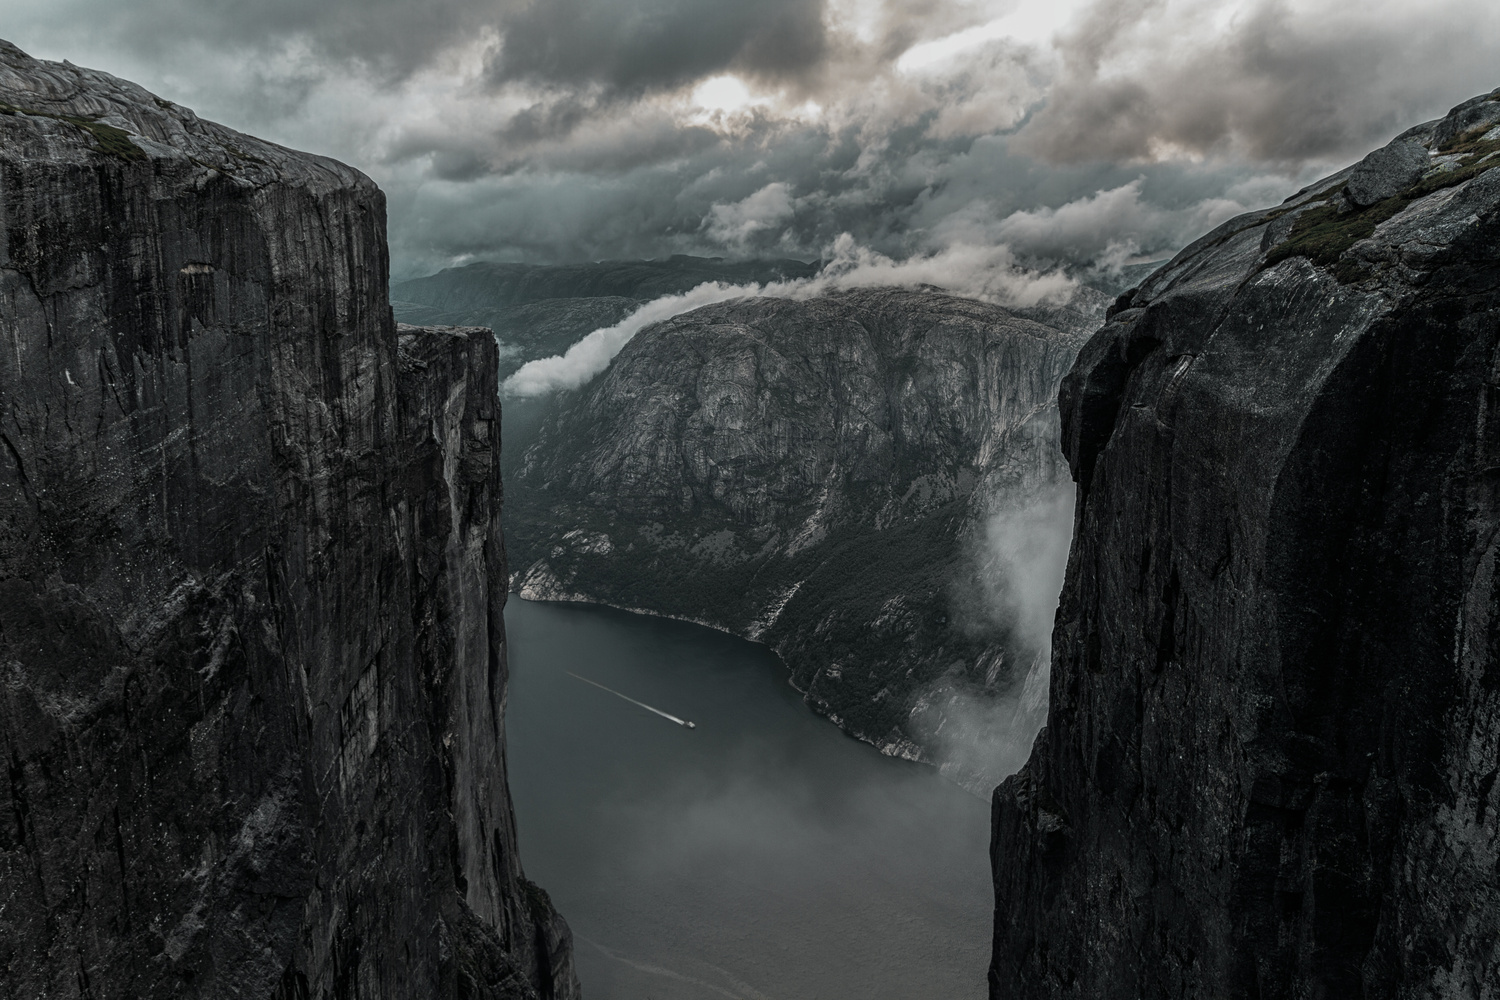 It's getting dark in the fjords. by Matthias Dengler